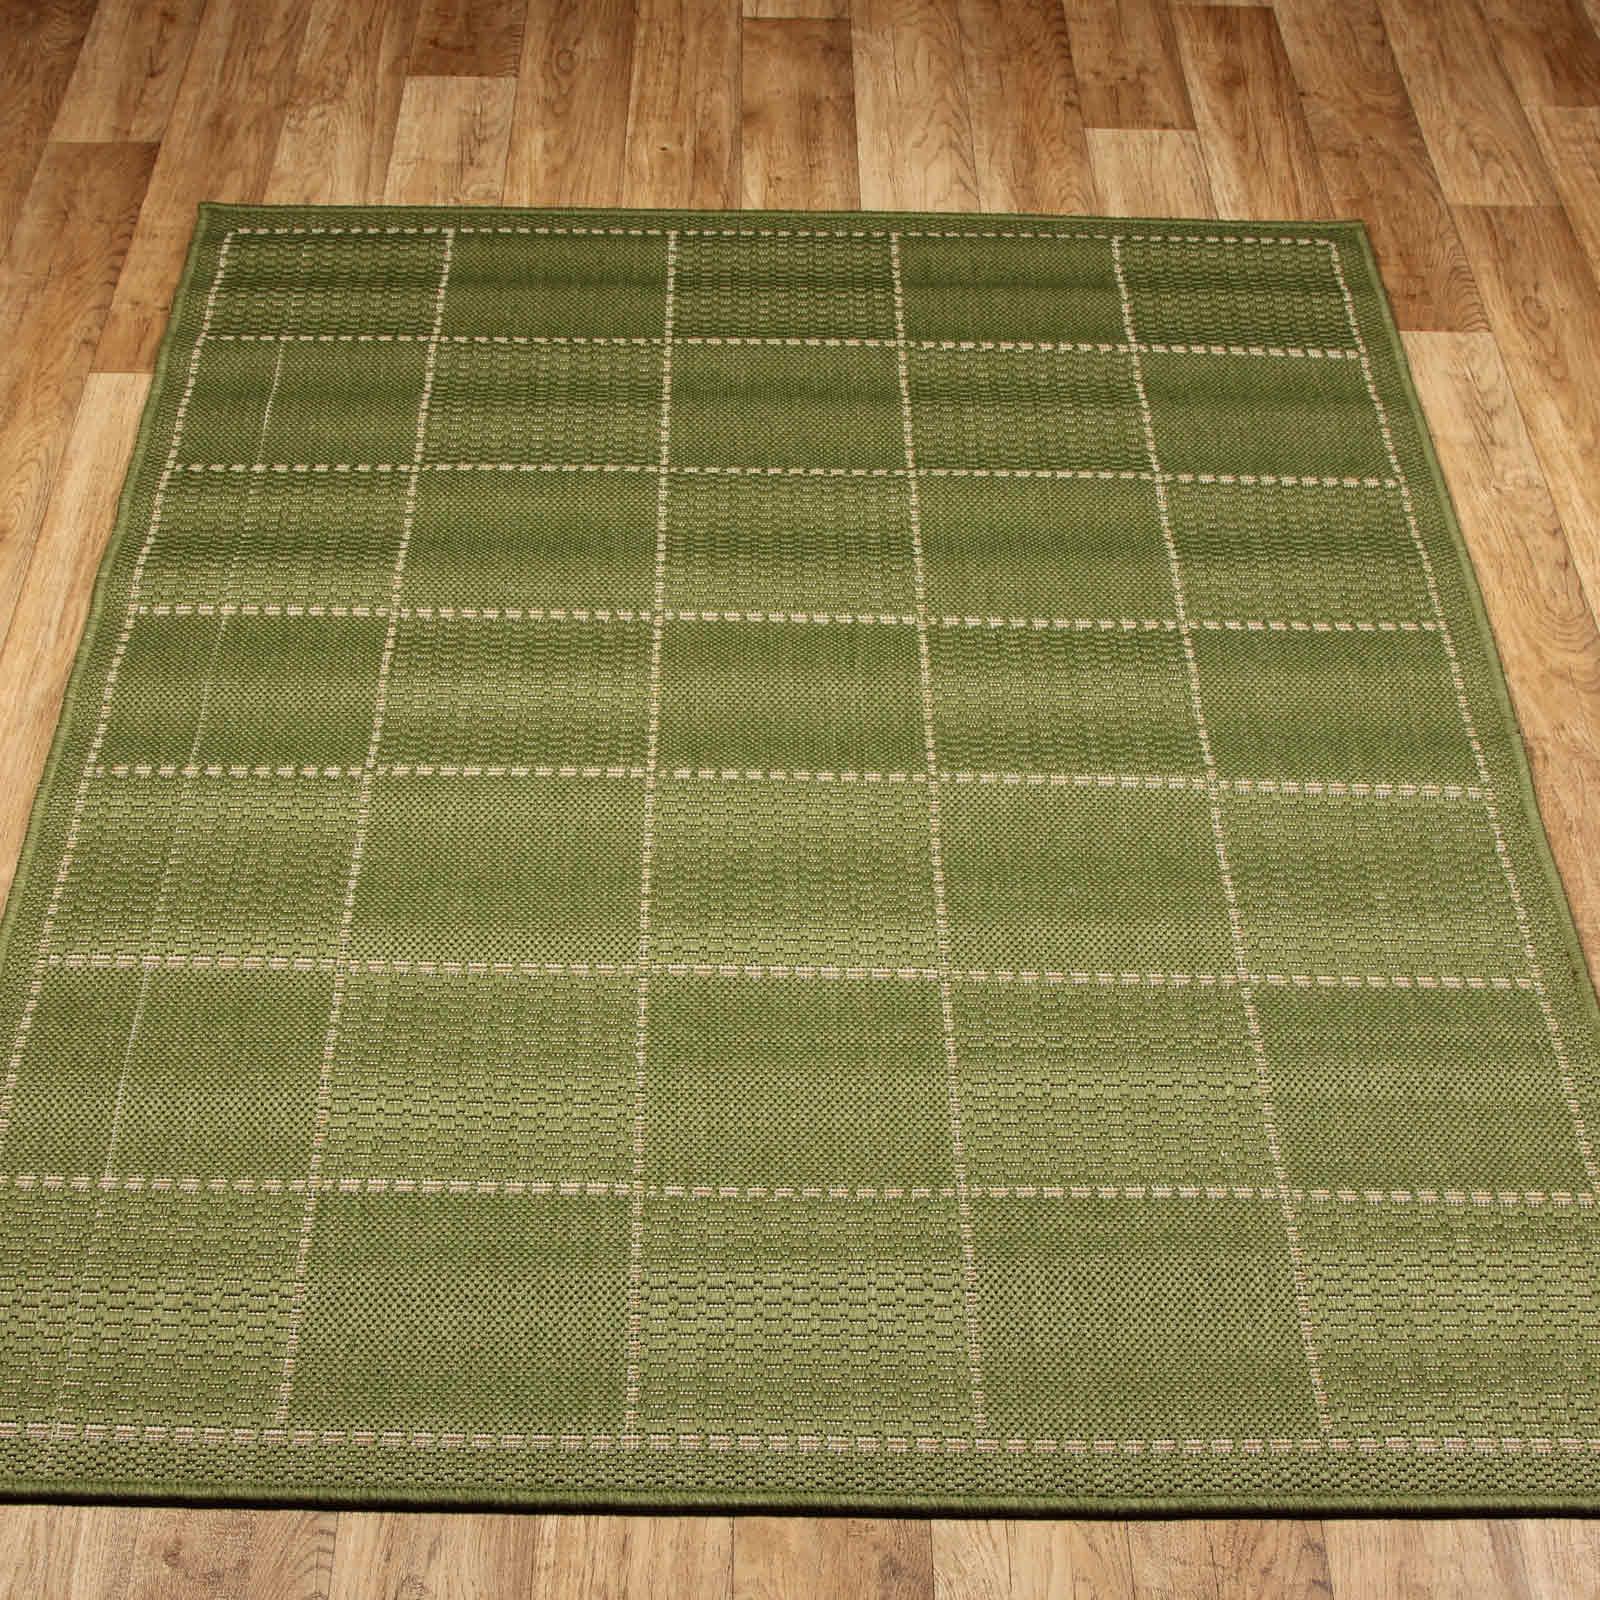 Green Kitchen Rugs And Black Floorcloth Country